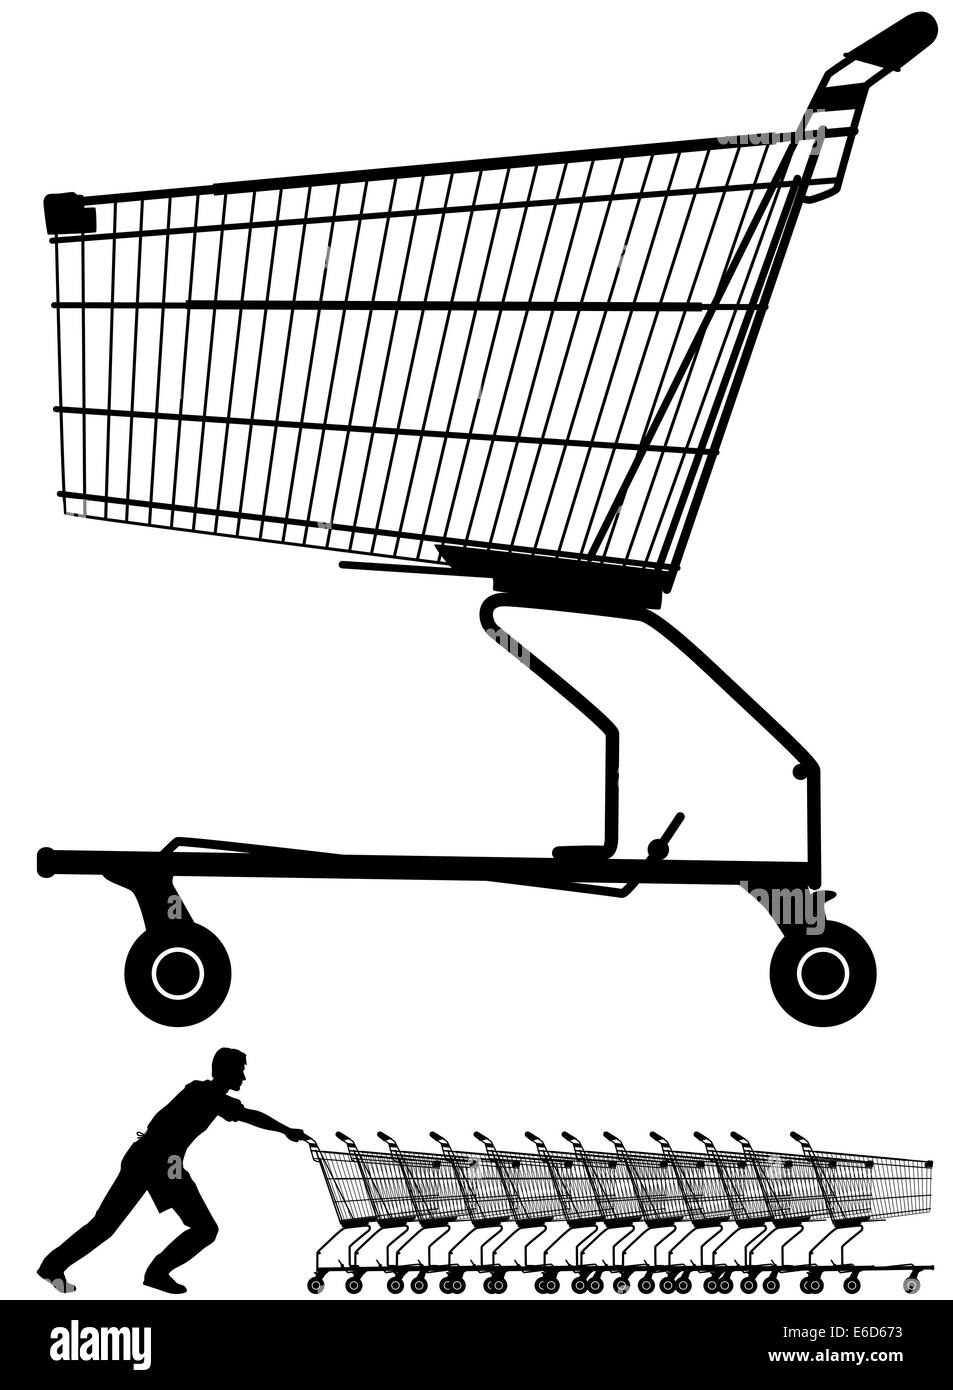 Editable vector illustration of a shopping trolley silhouette plus a worker pushing them - Stock Image